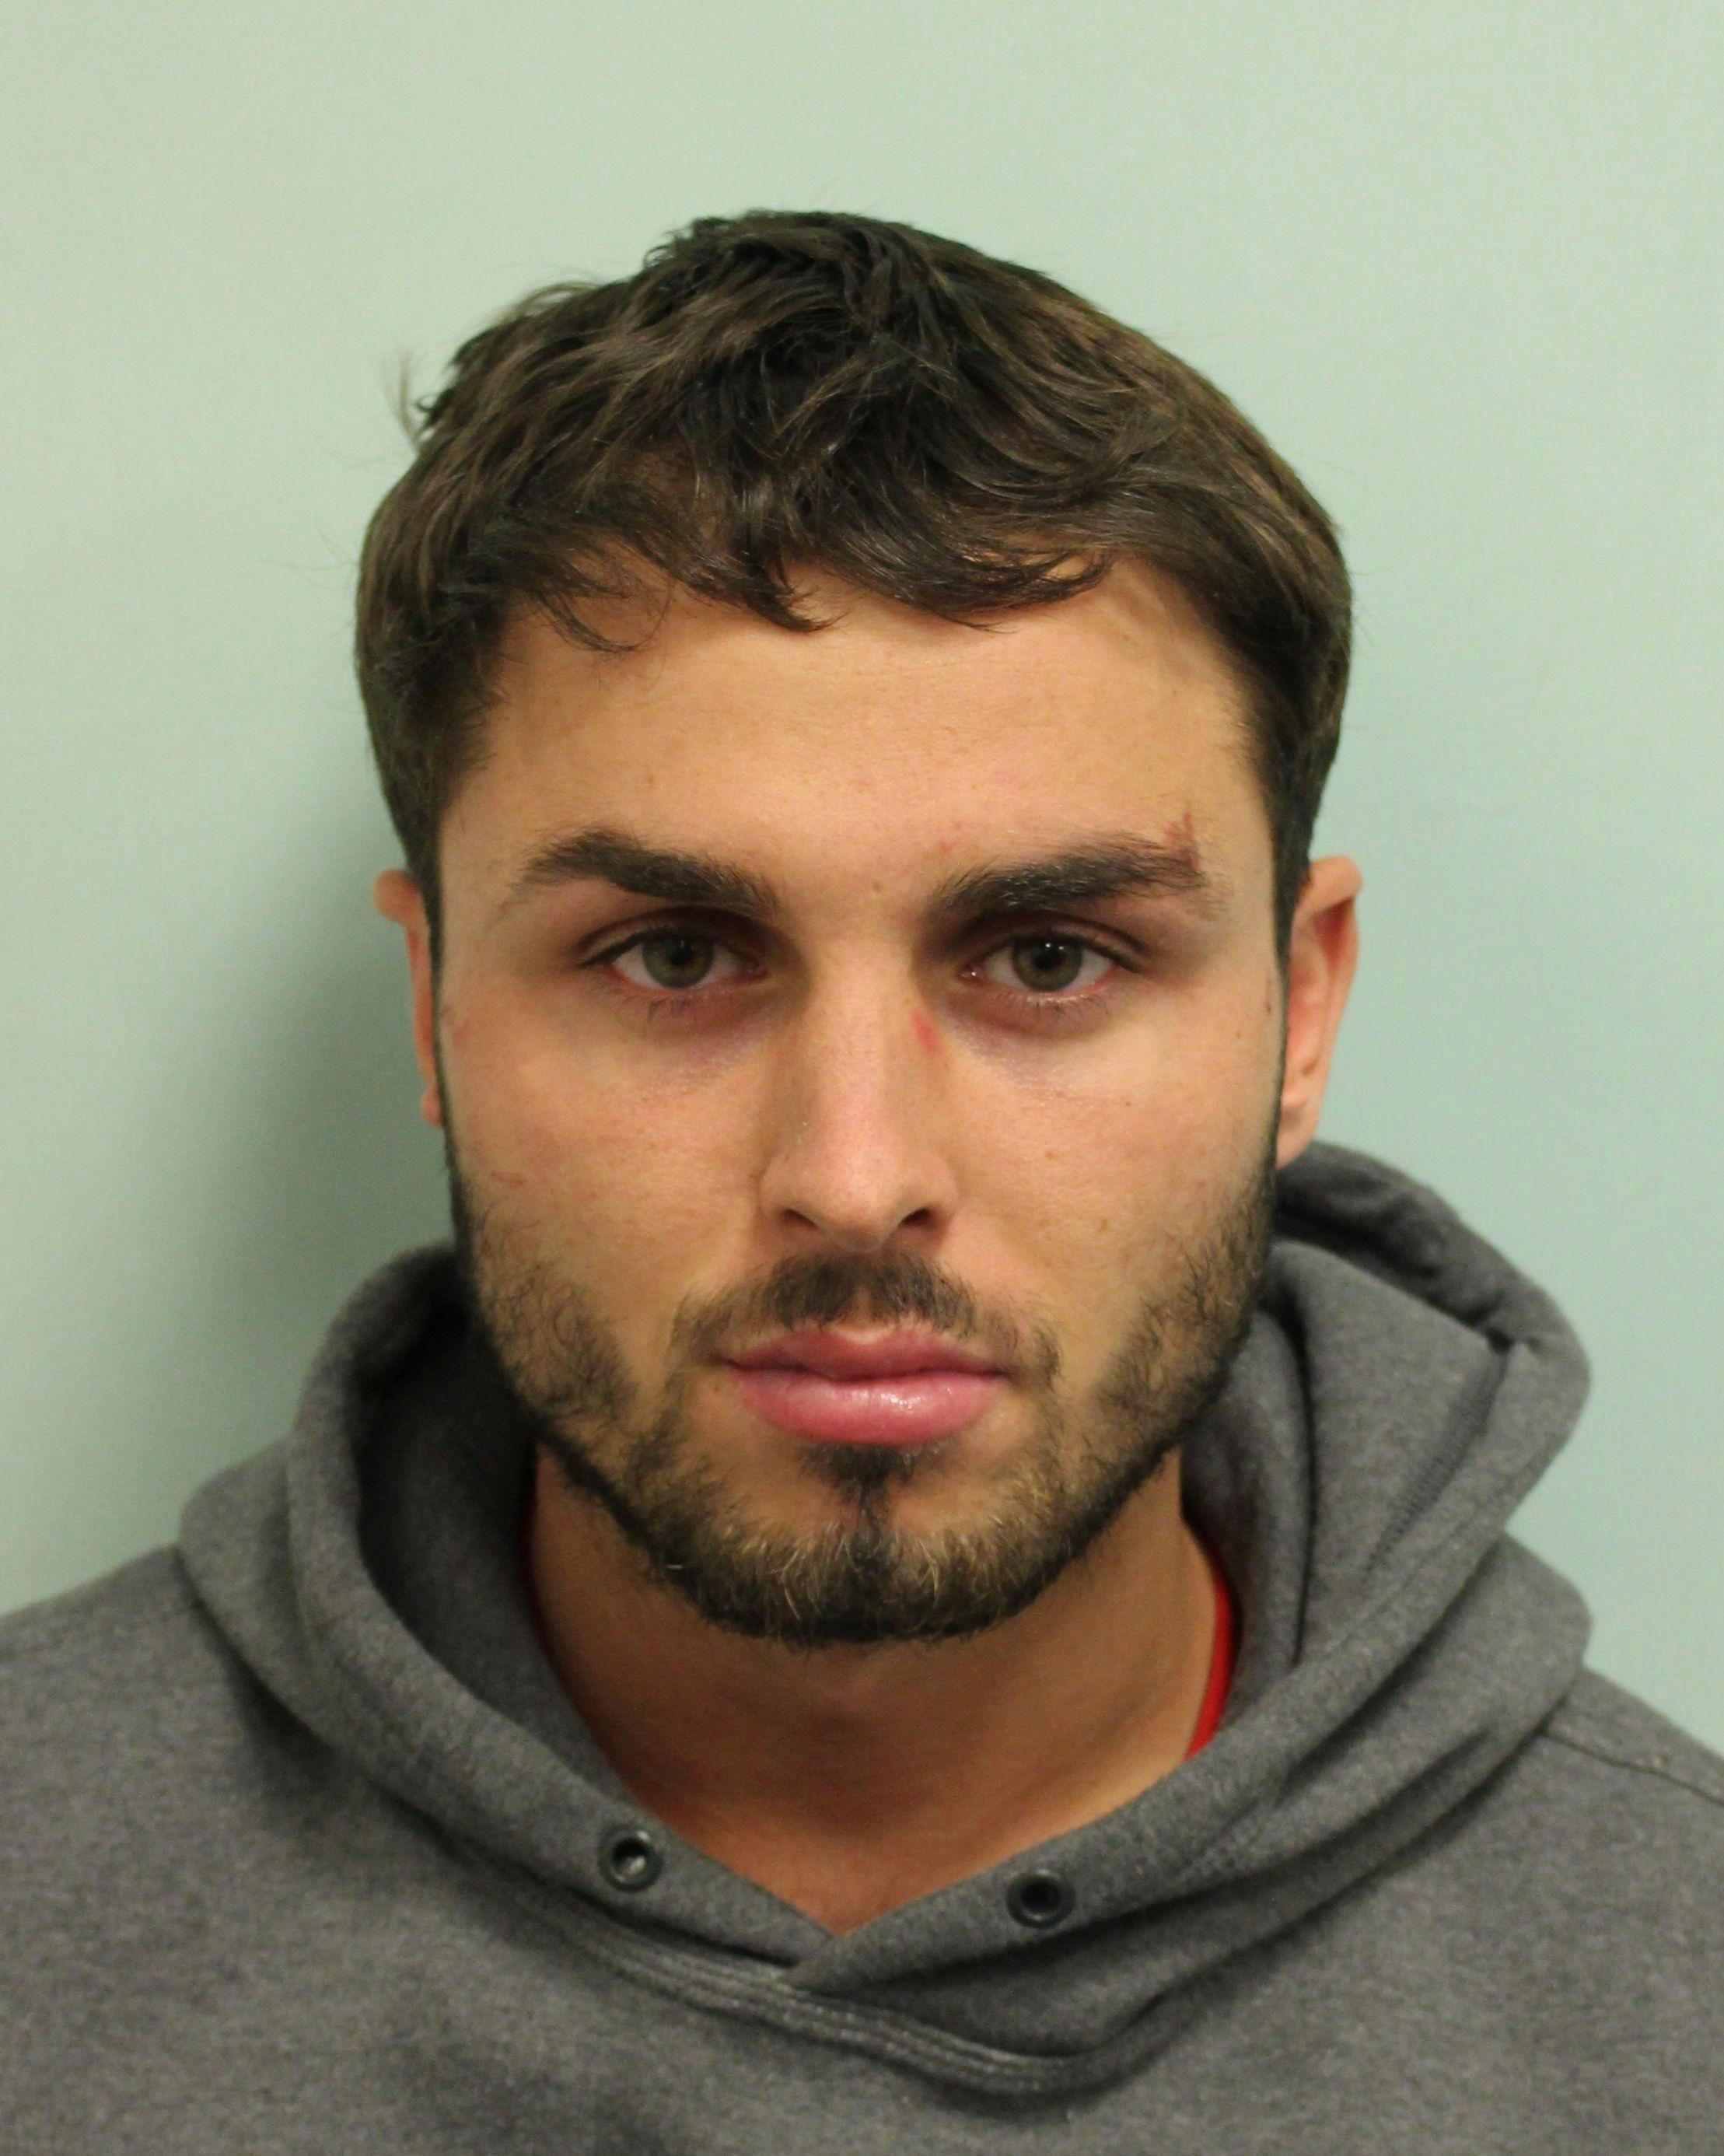 Acid-hurler Arthur Collins lodges appeal to slash his sentence by four years